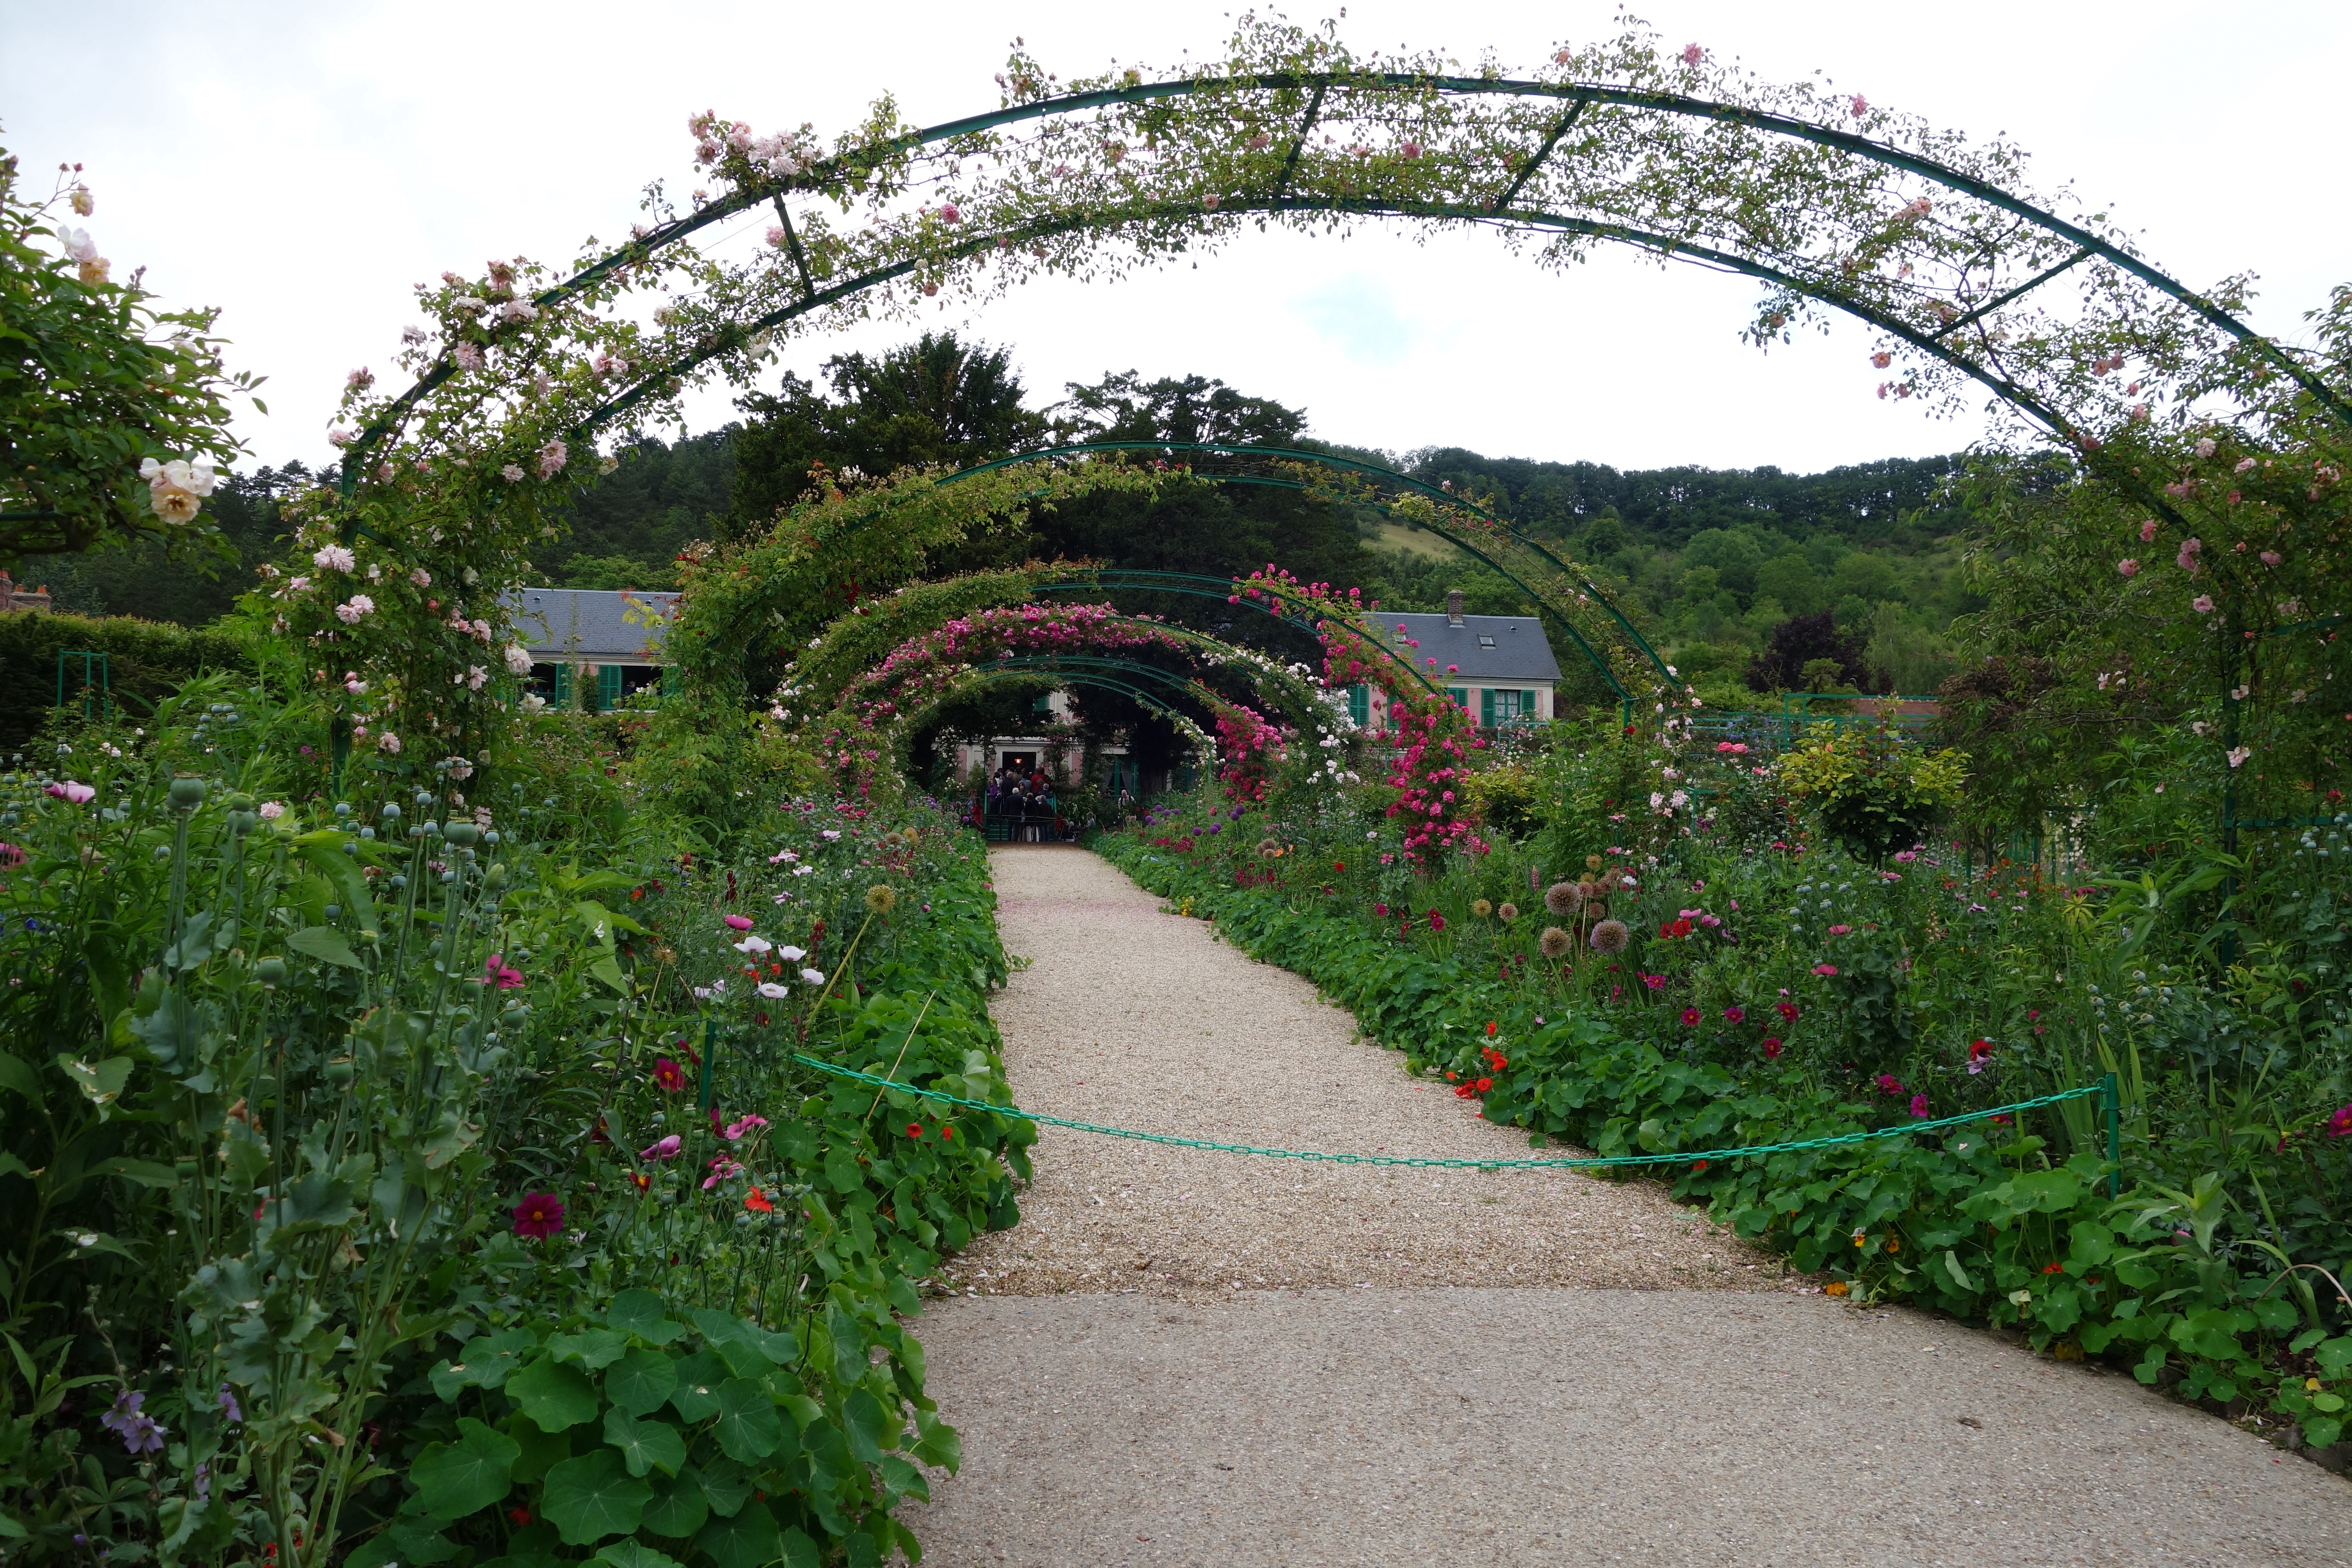 Path of rose arches in Monet's garden